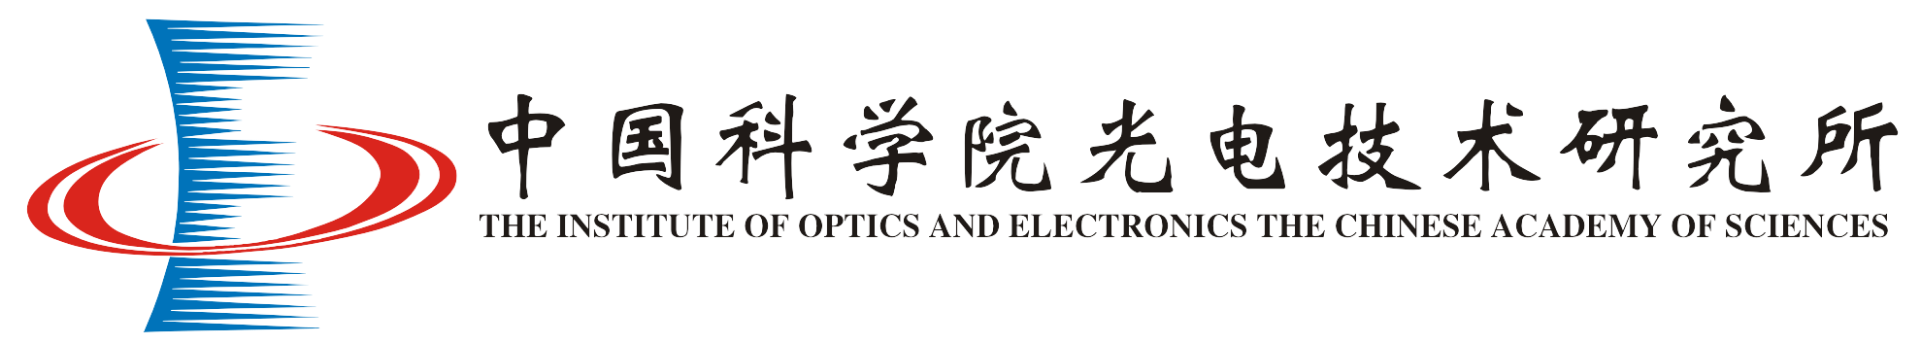 Institute of Optics and Electronics (IOE), Chinese Academy of Sciences (CAS)